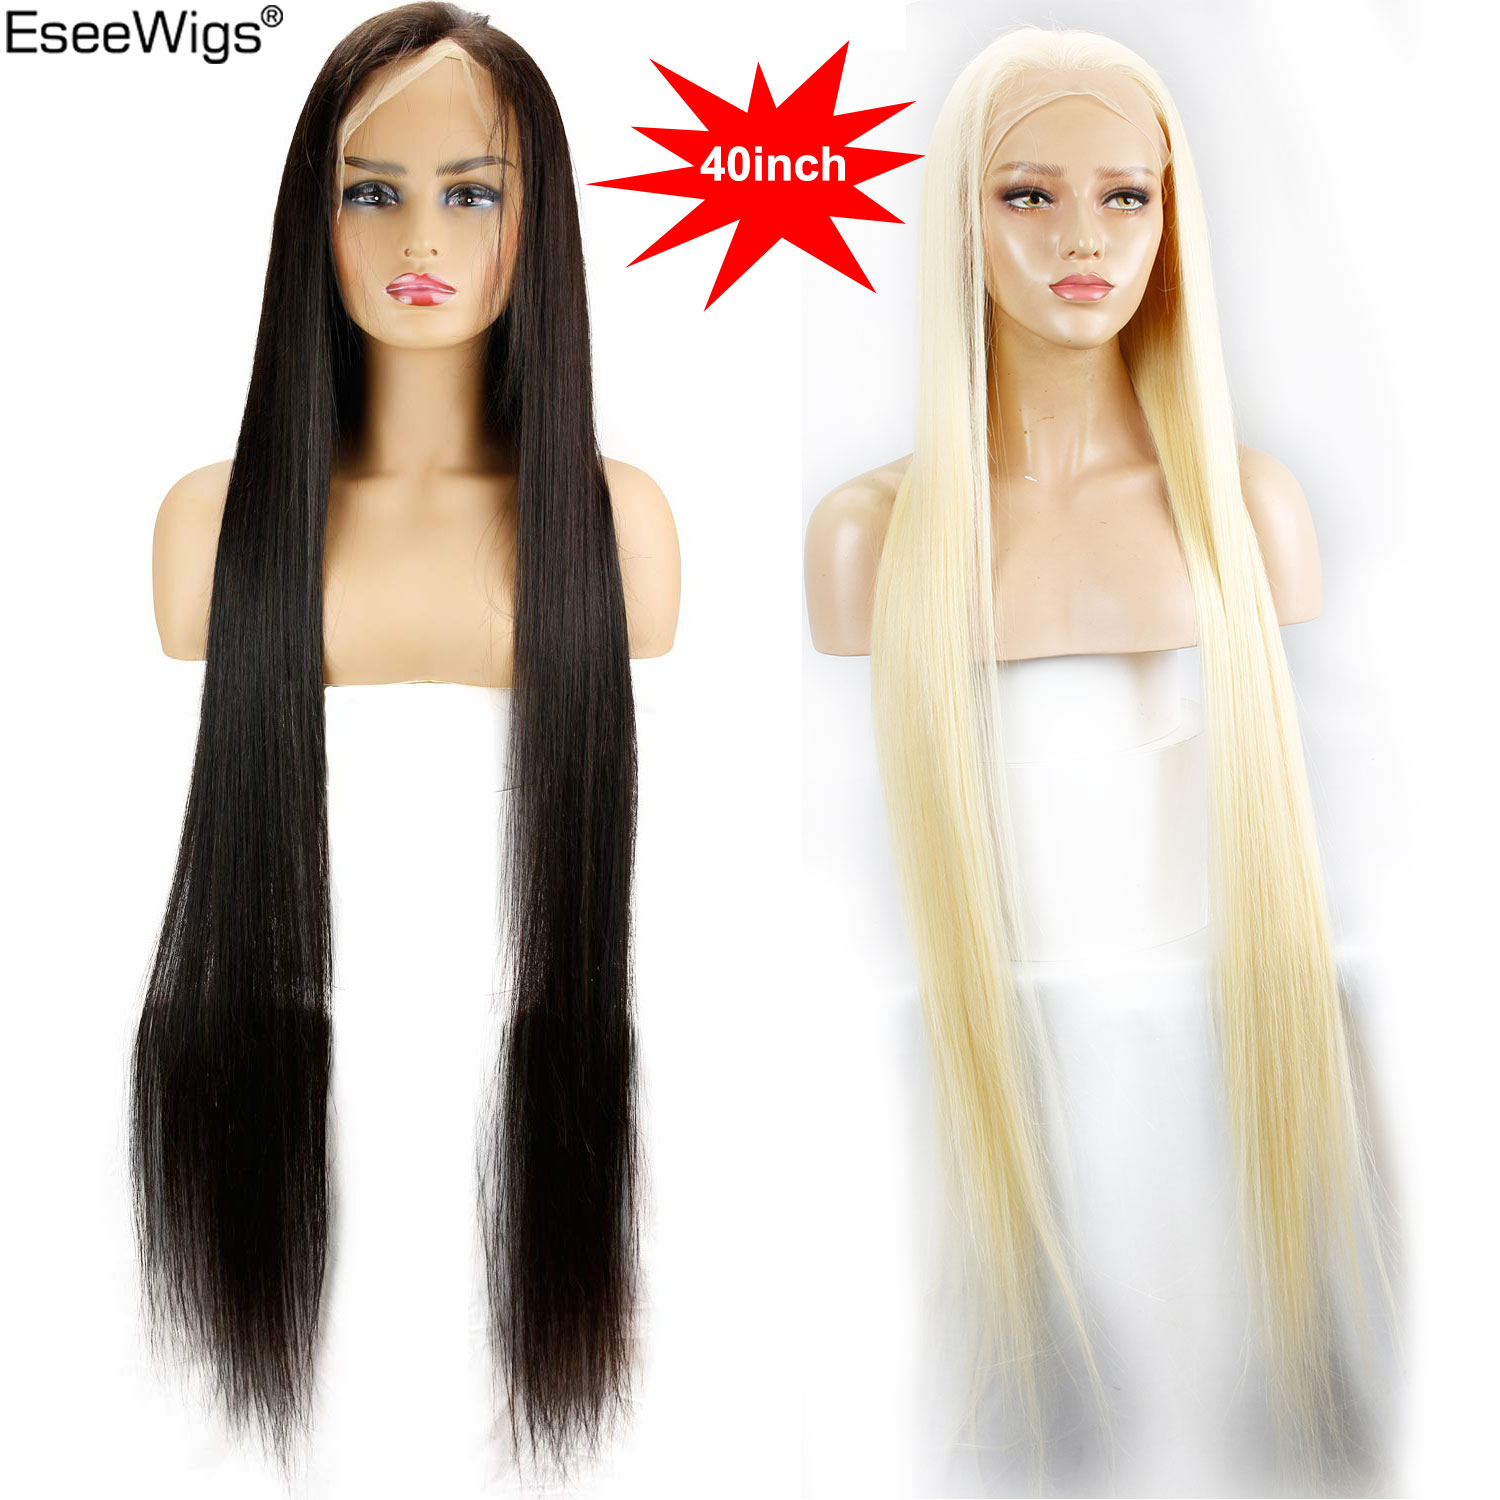 Eseewigs 28 30 32 34 36 38 40 42 inch Long Brazilian Virgin Human Hair Full Lace Wigs Silk Straight 613 Color for Women 150% image